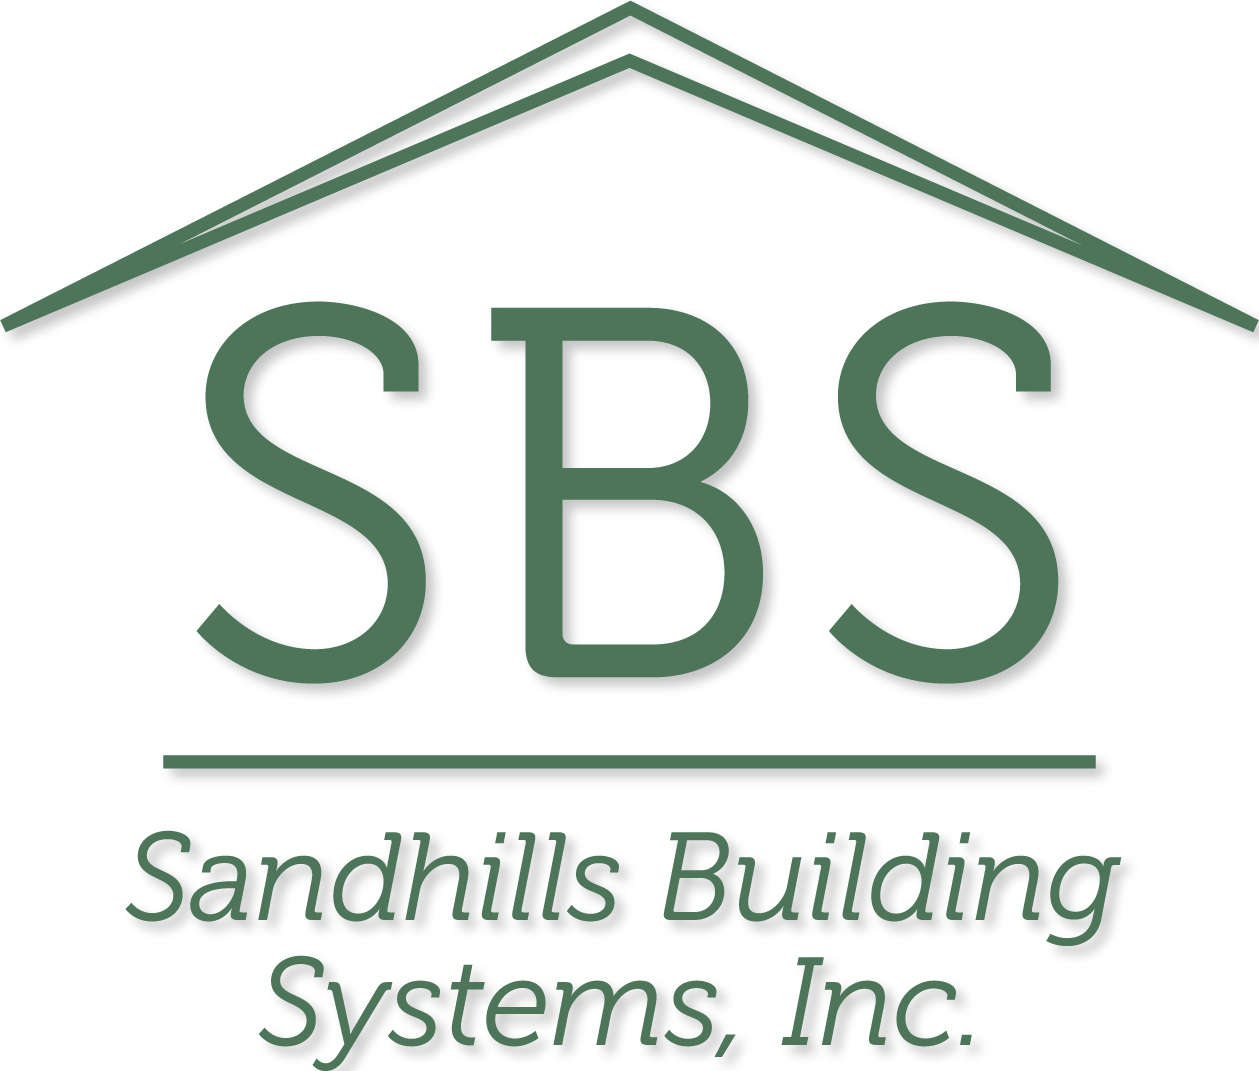 Sandhills Building Systems